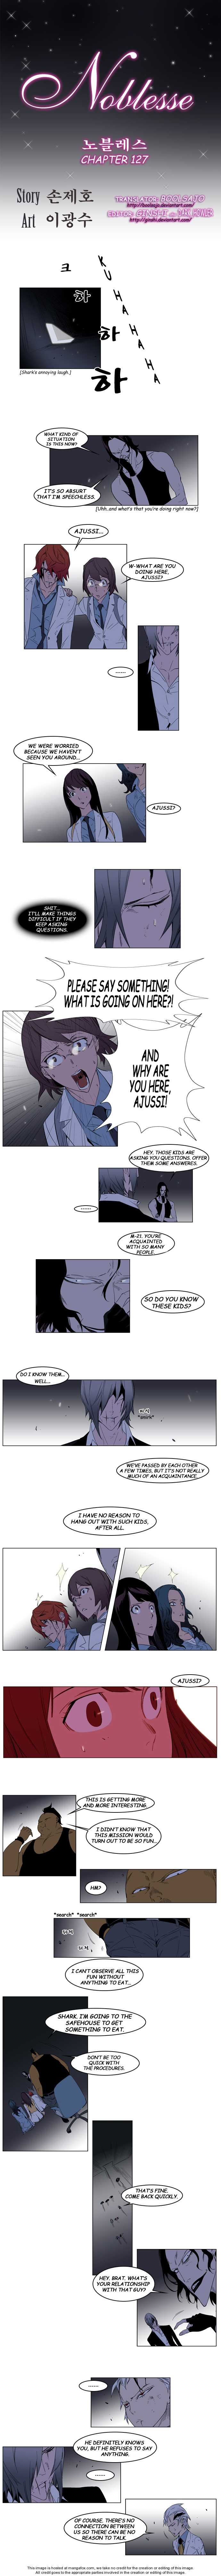 Noblesse 127 Page 1